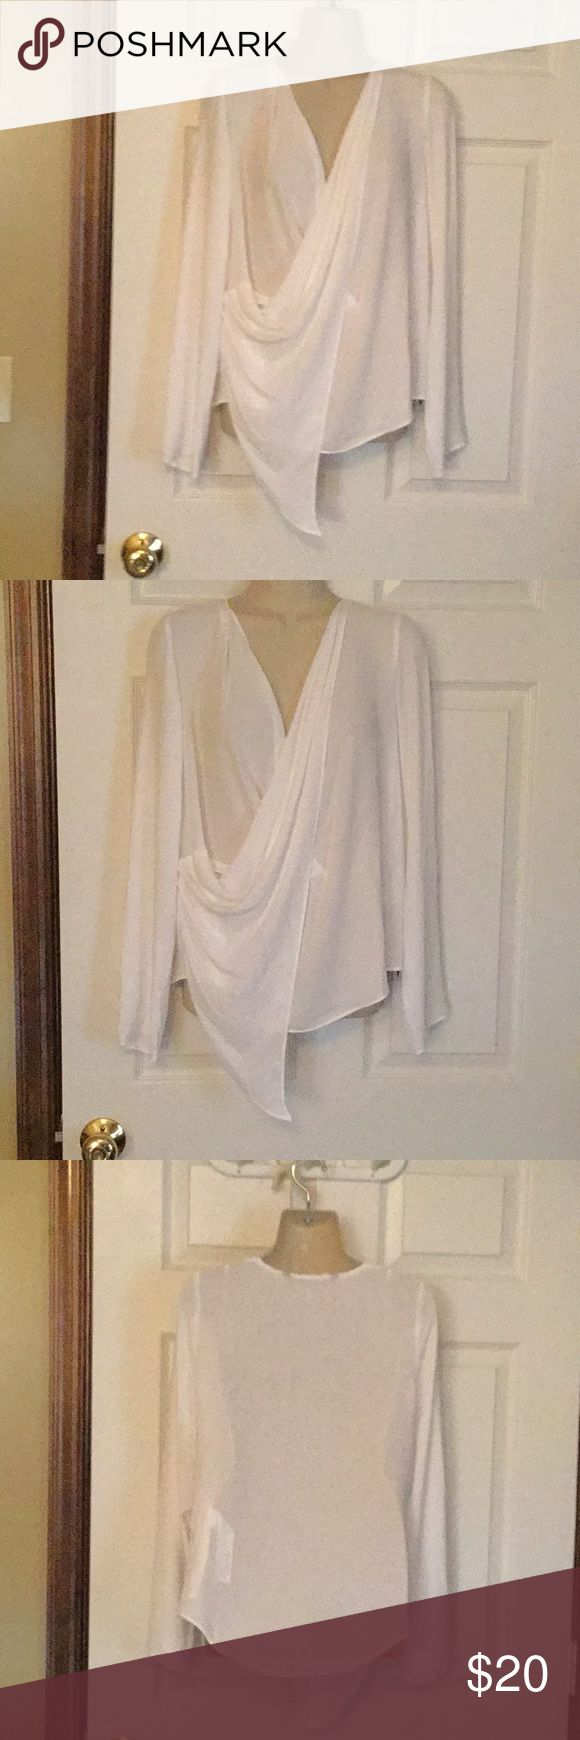 Zara White Dressy Top NWT 25 inches from shoulder to bottom of top.  Very silky type material.  Slip over the head. Zara Tops Blouses